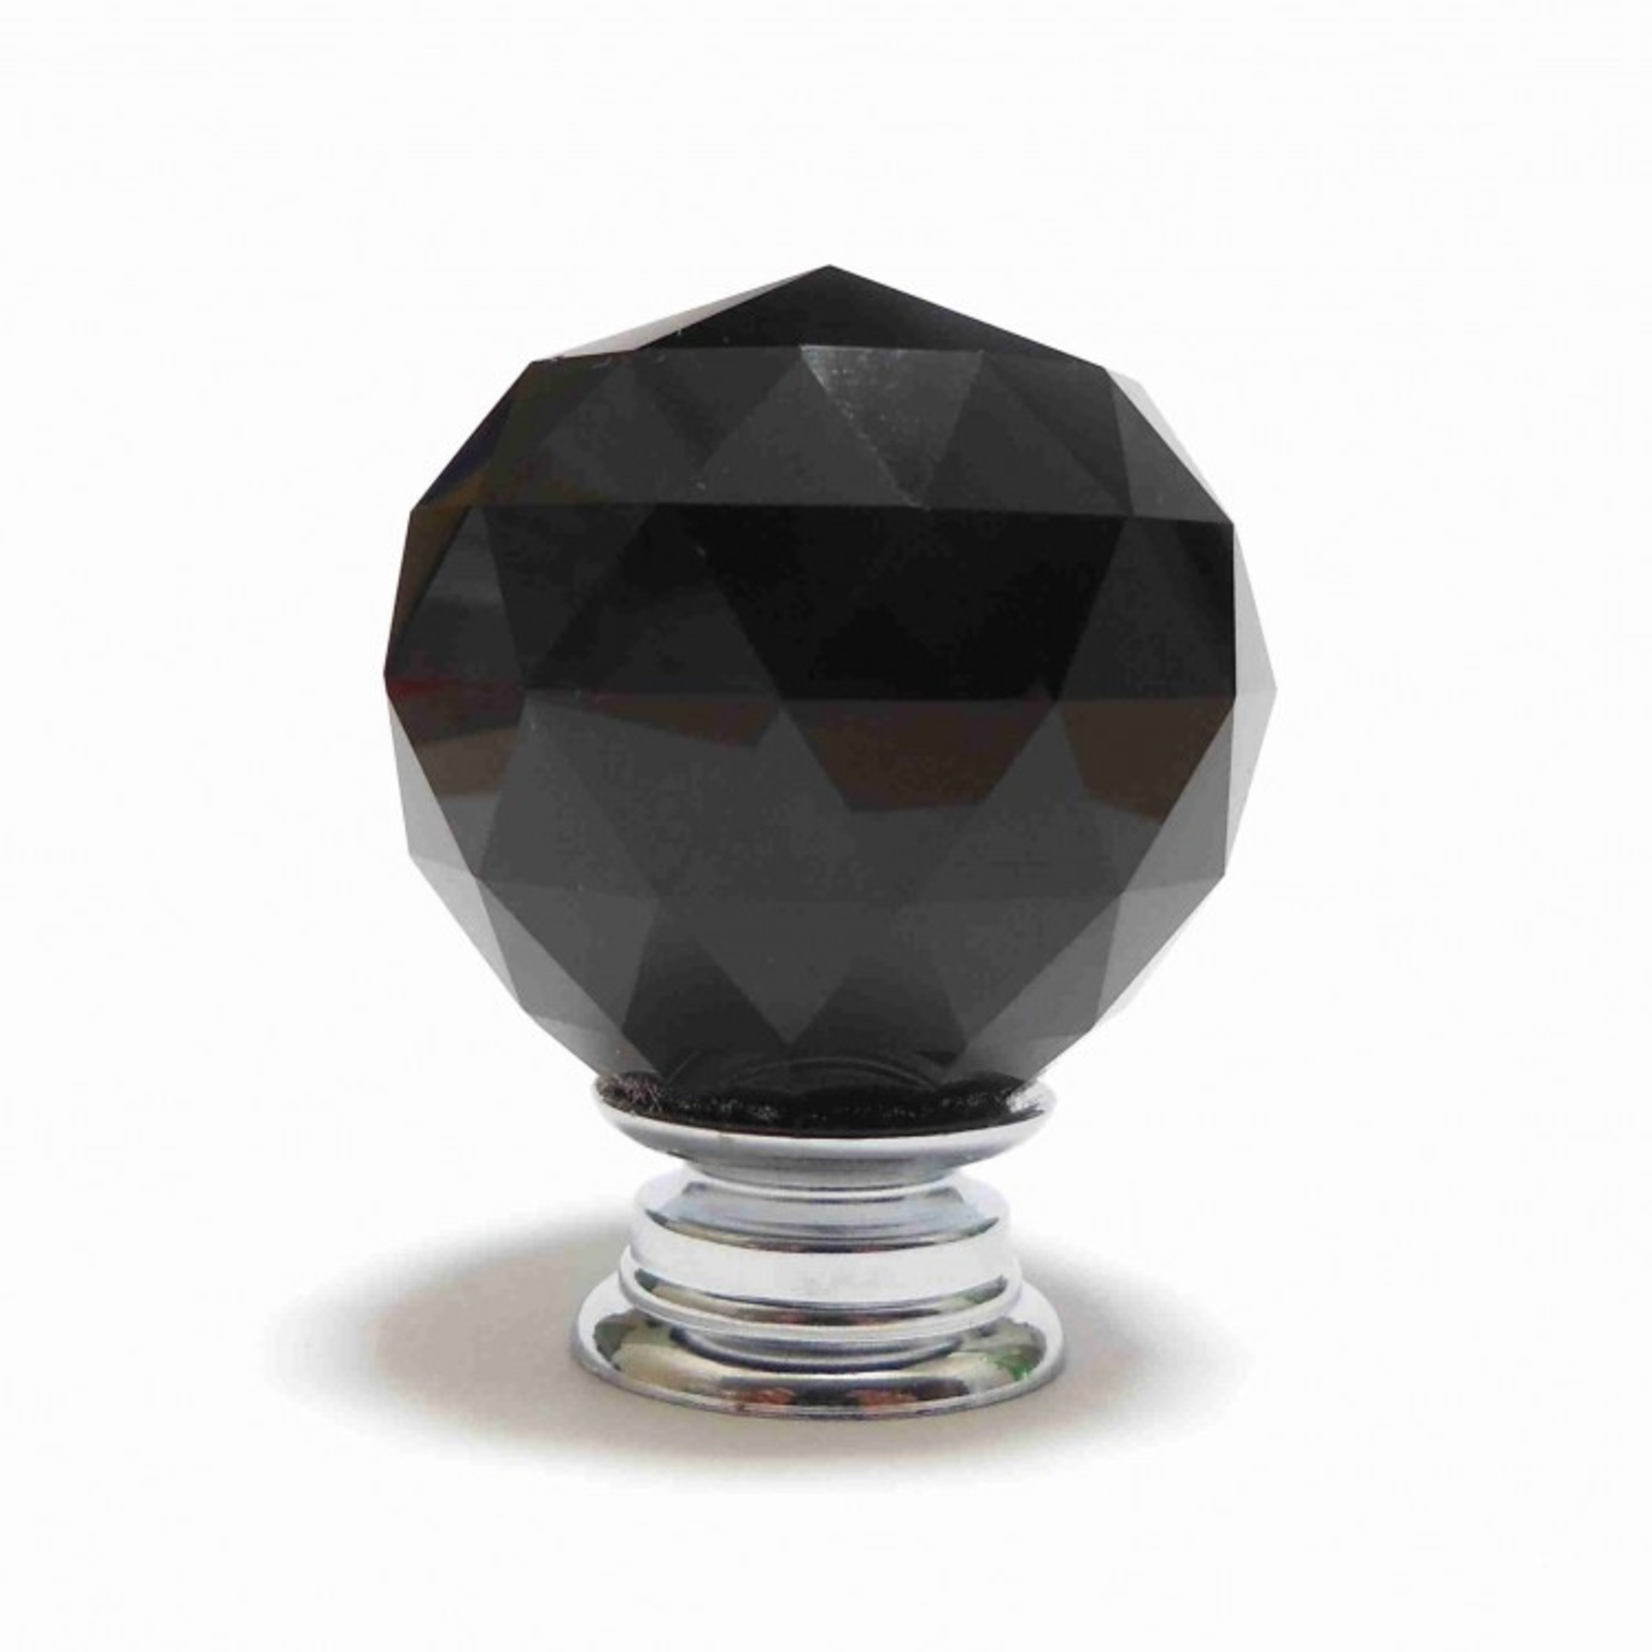 PKA Crystal Faceted Cut Glass Knob Black (Small)